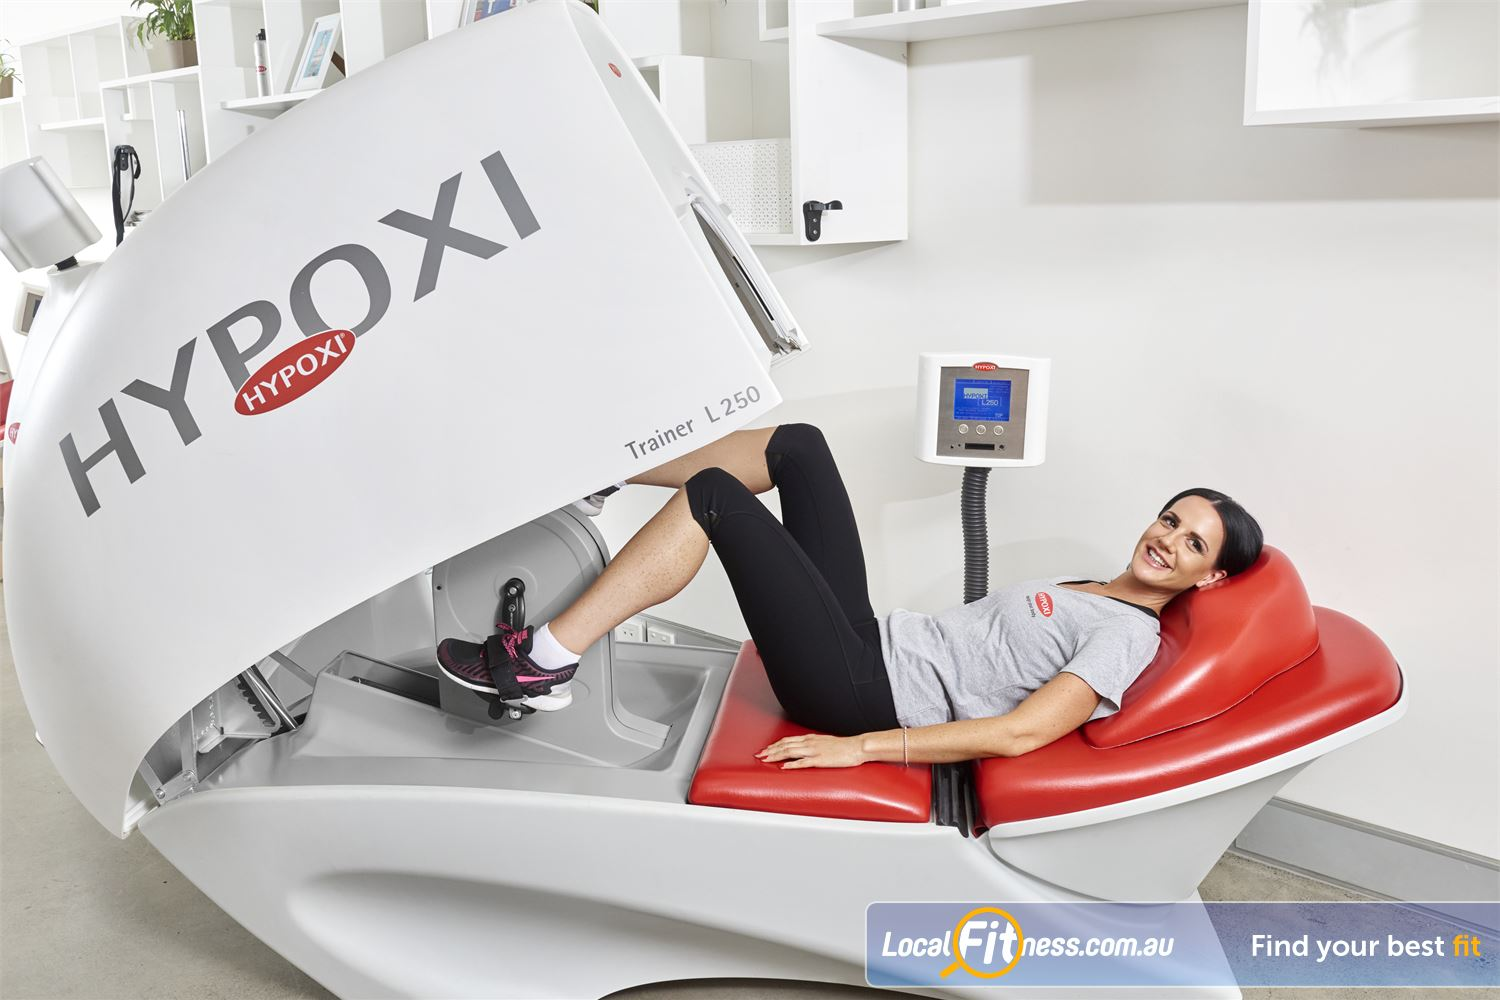 HYPOXI Weight Loss Port Melbourne The Vacunaut technology targets stubborn fat around the stomach and hips.